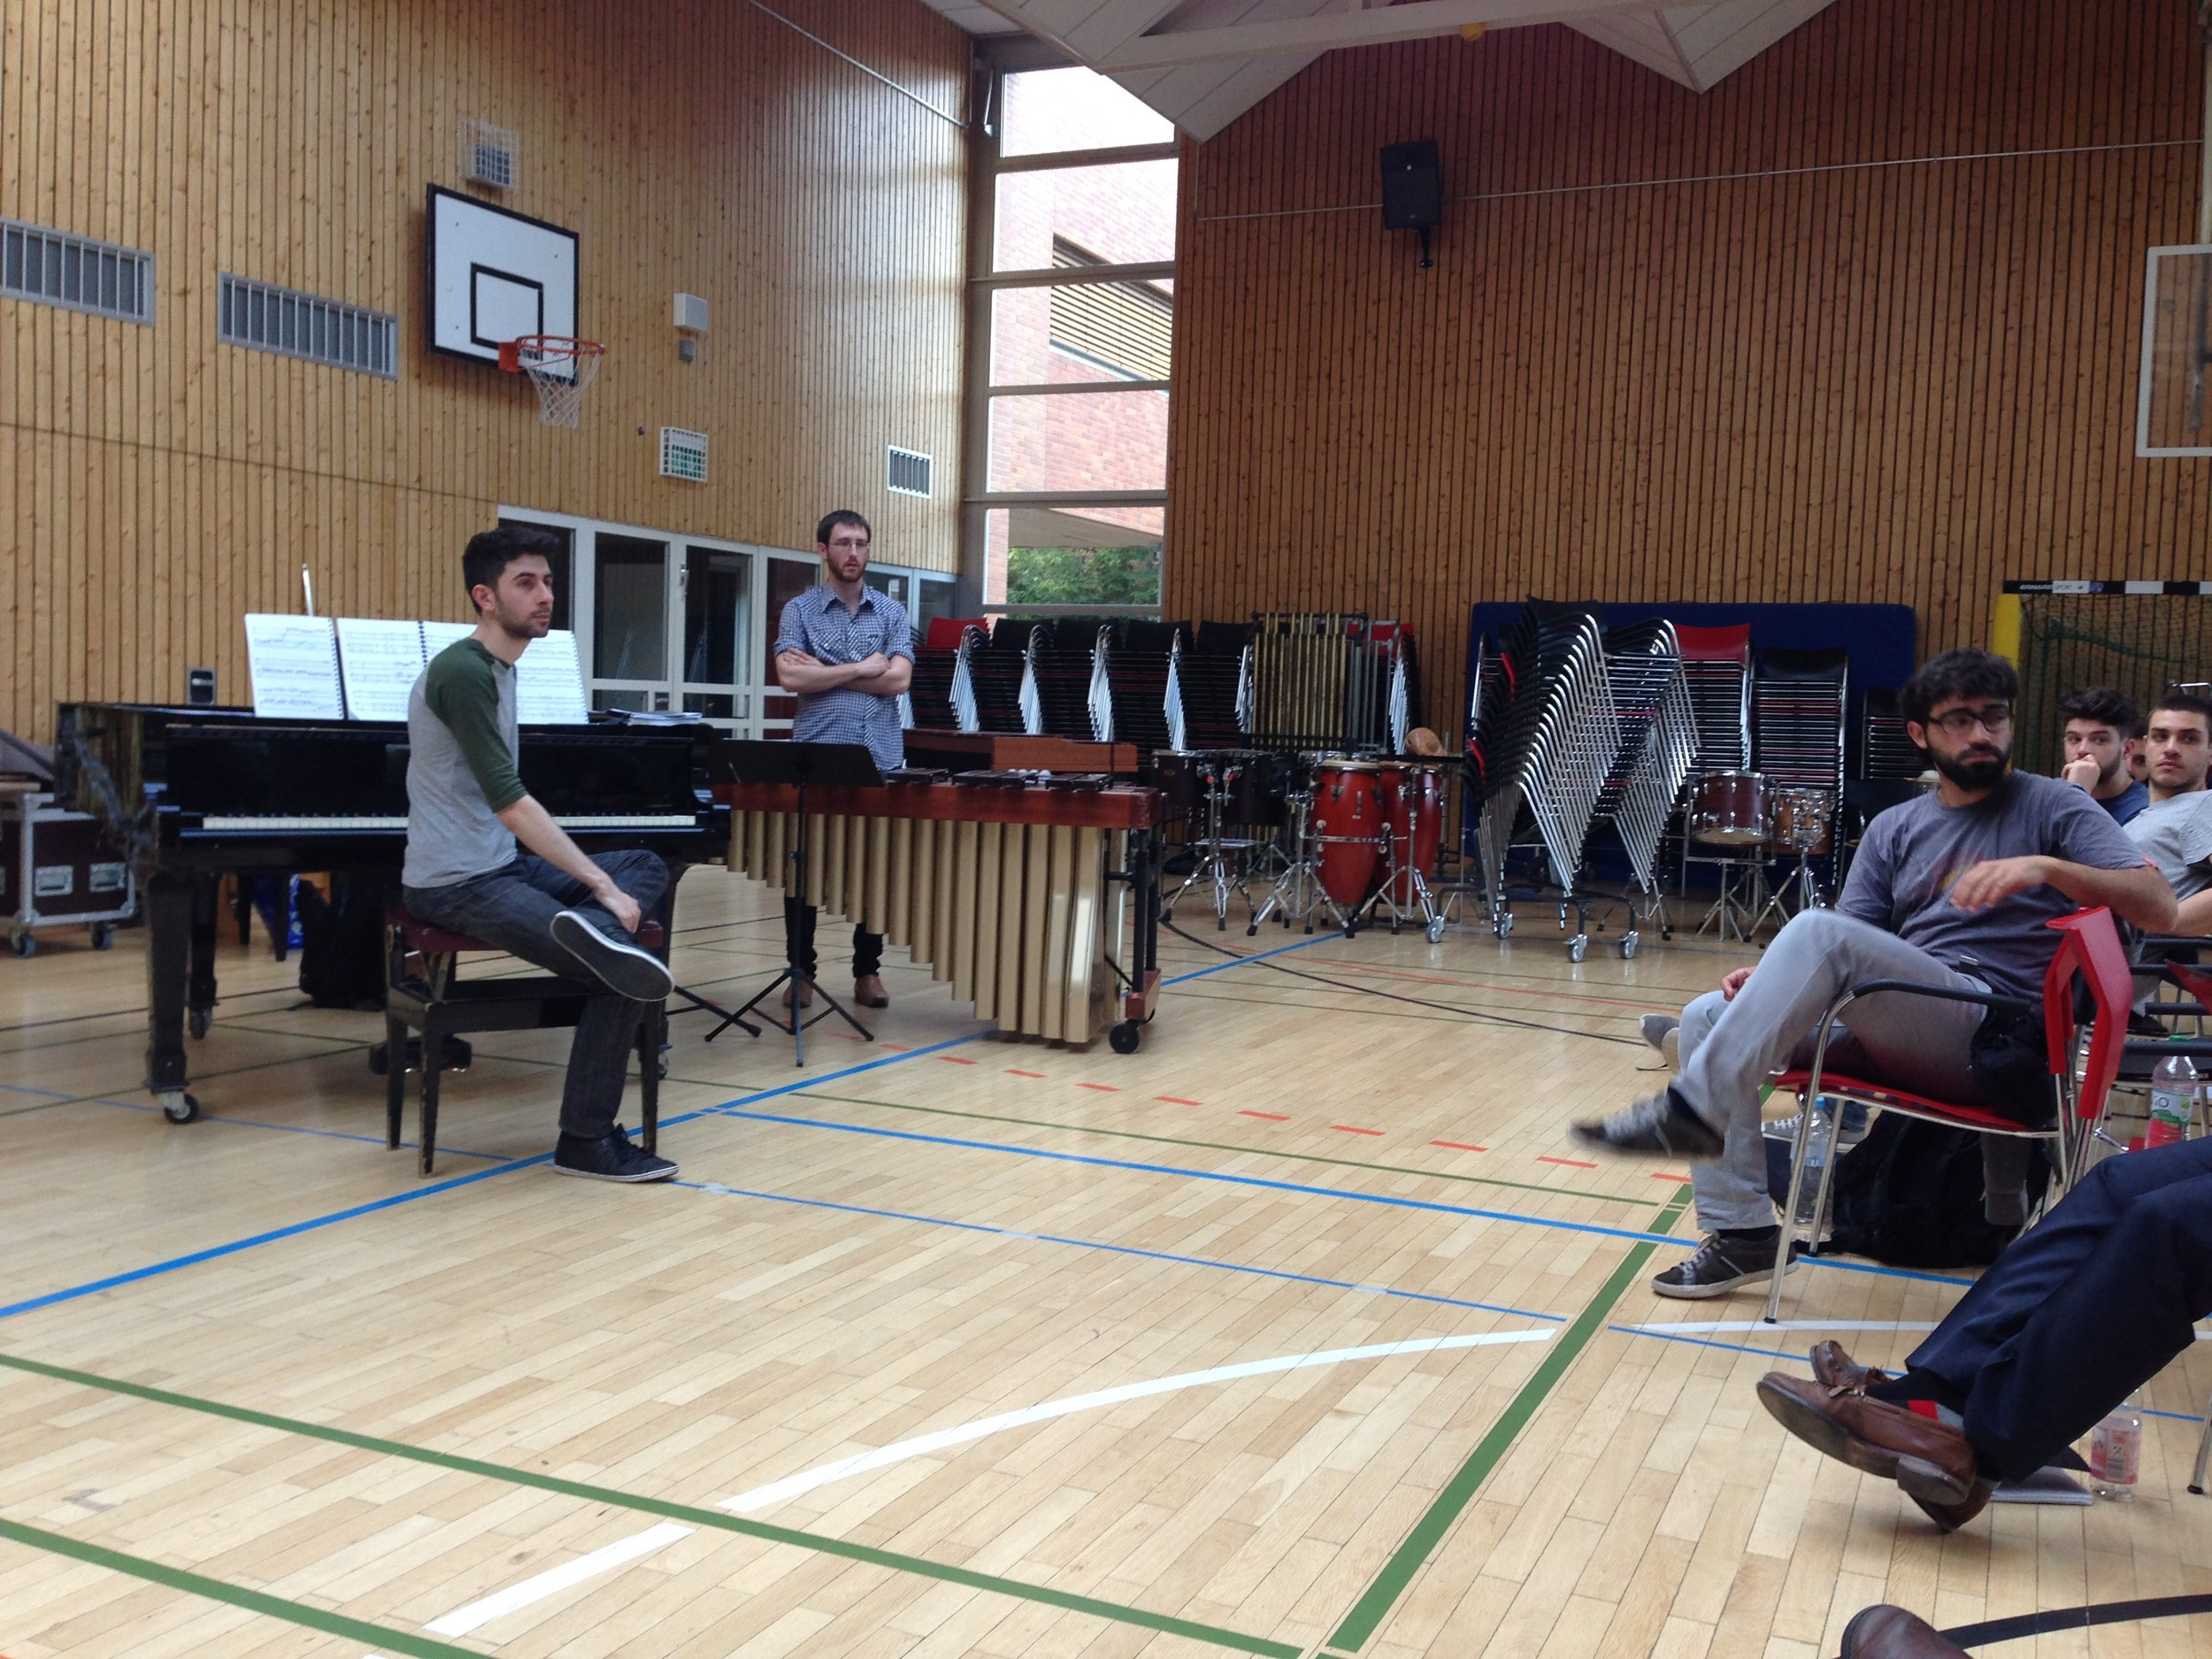 Alex and Angus receive coaching from composer Georges Aperghis and percussionist Christian Dierstein during a masterclass at the Darmstadt Summer Festival.